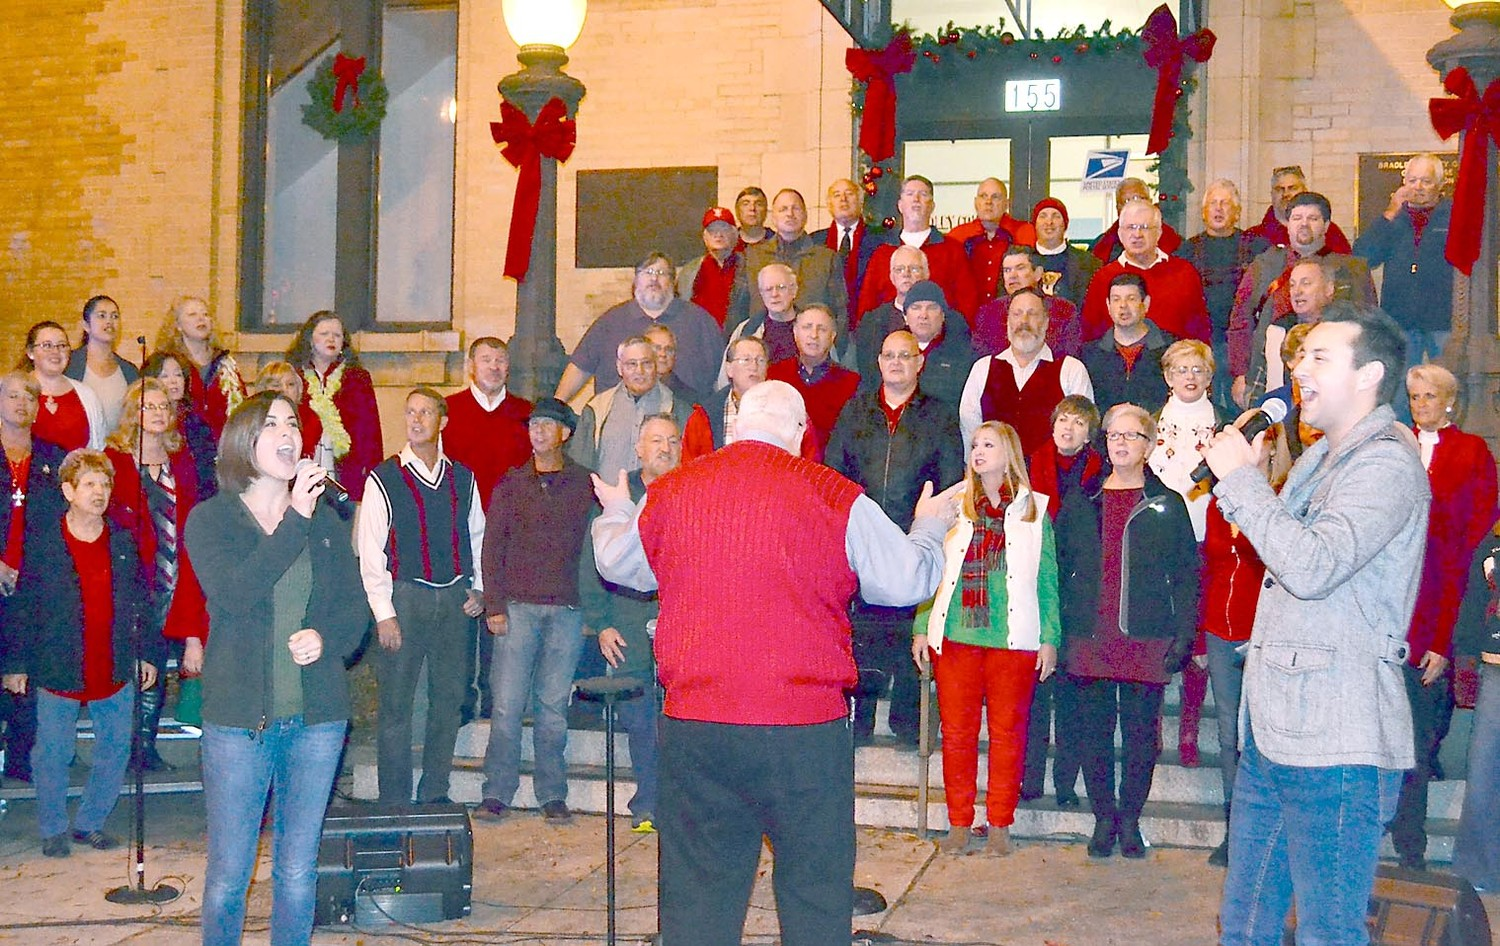 TATUM BRINKMAN, left, and Dr. Tyler Brinson sing a Christmas duet at the lighting of the downtown holiday tree Friday.